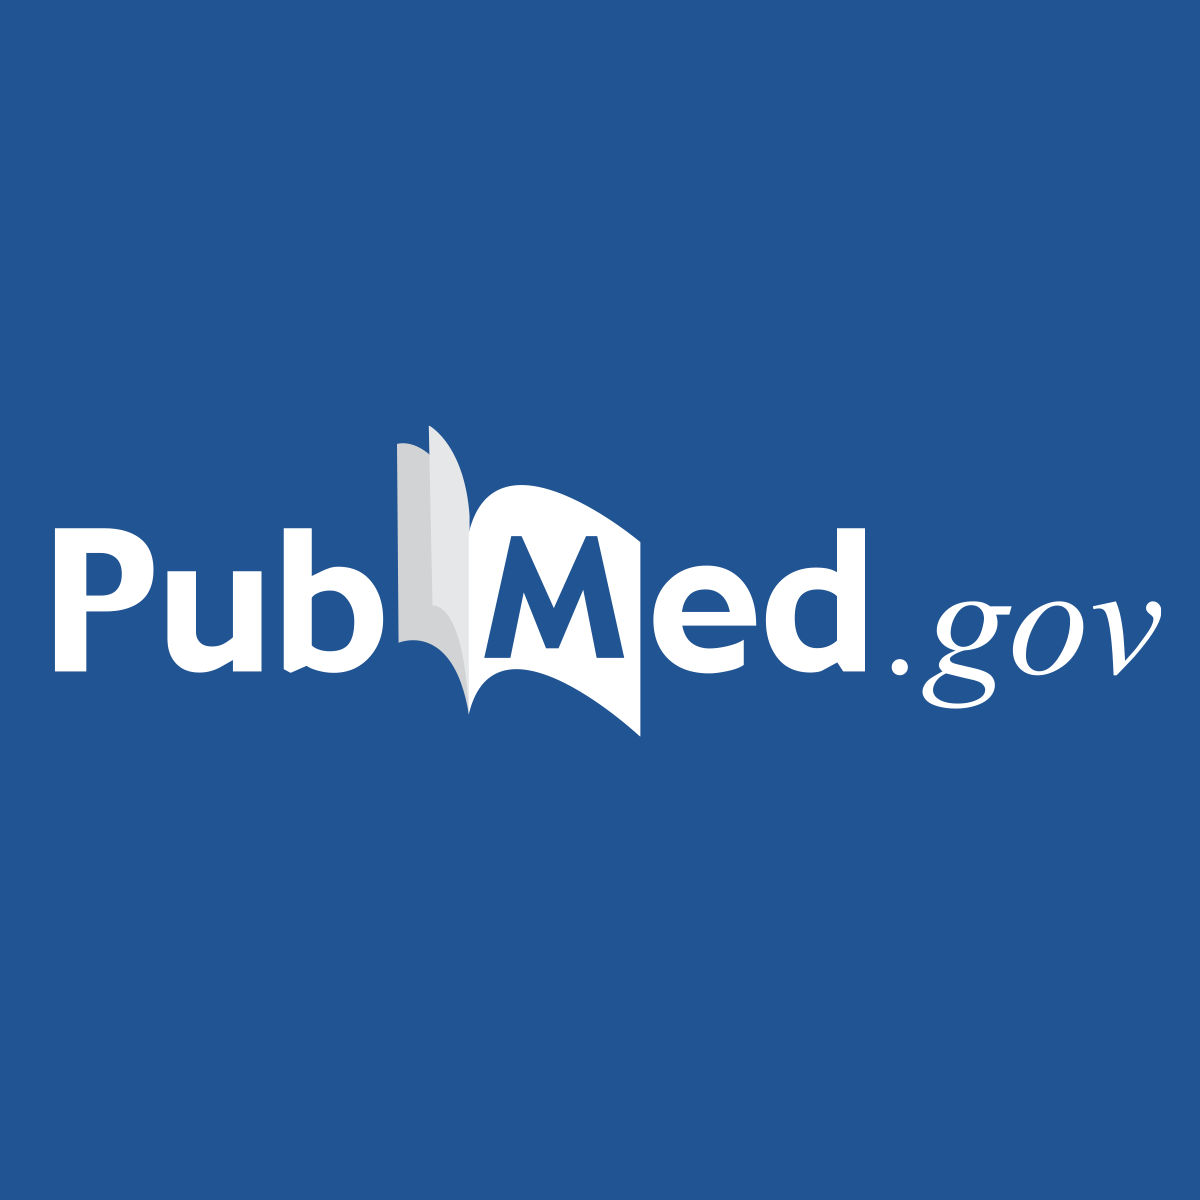 GLP-1 Receptor Agonists and Cardiovascular Outcome Trials: An Update